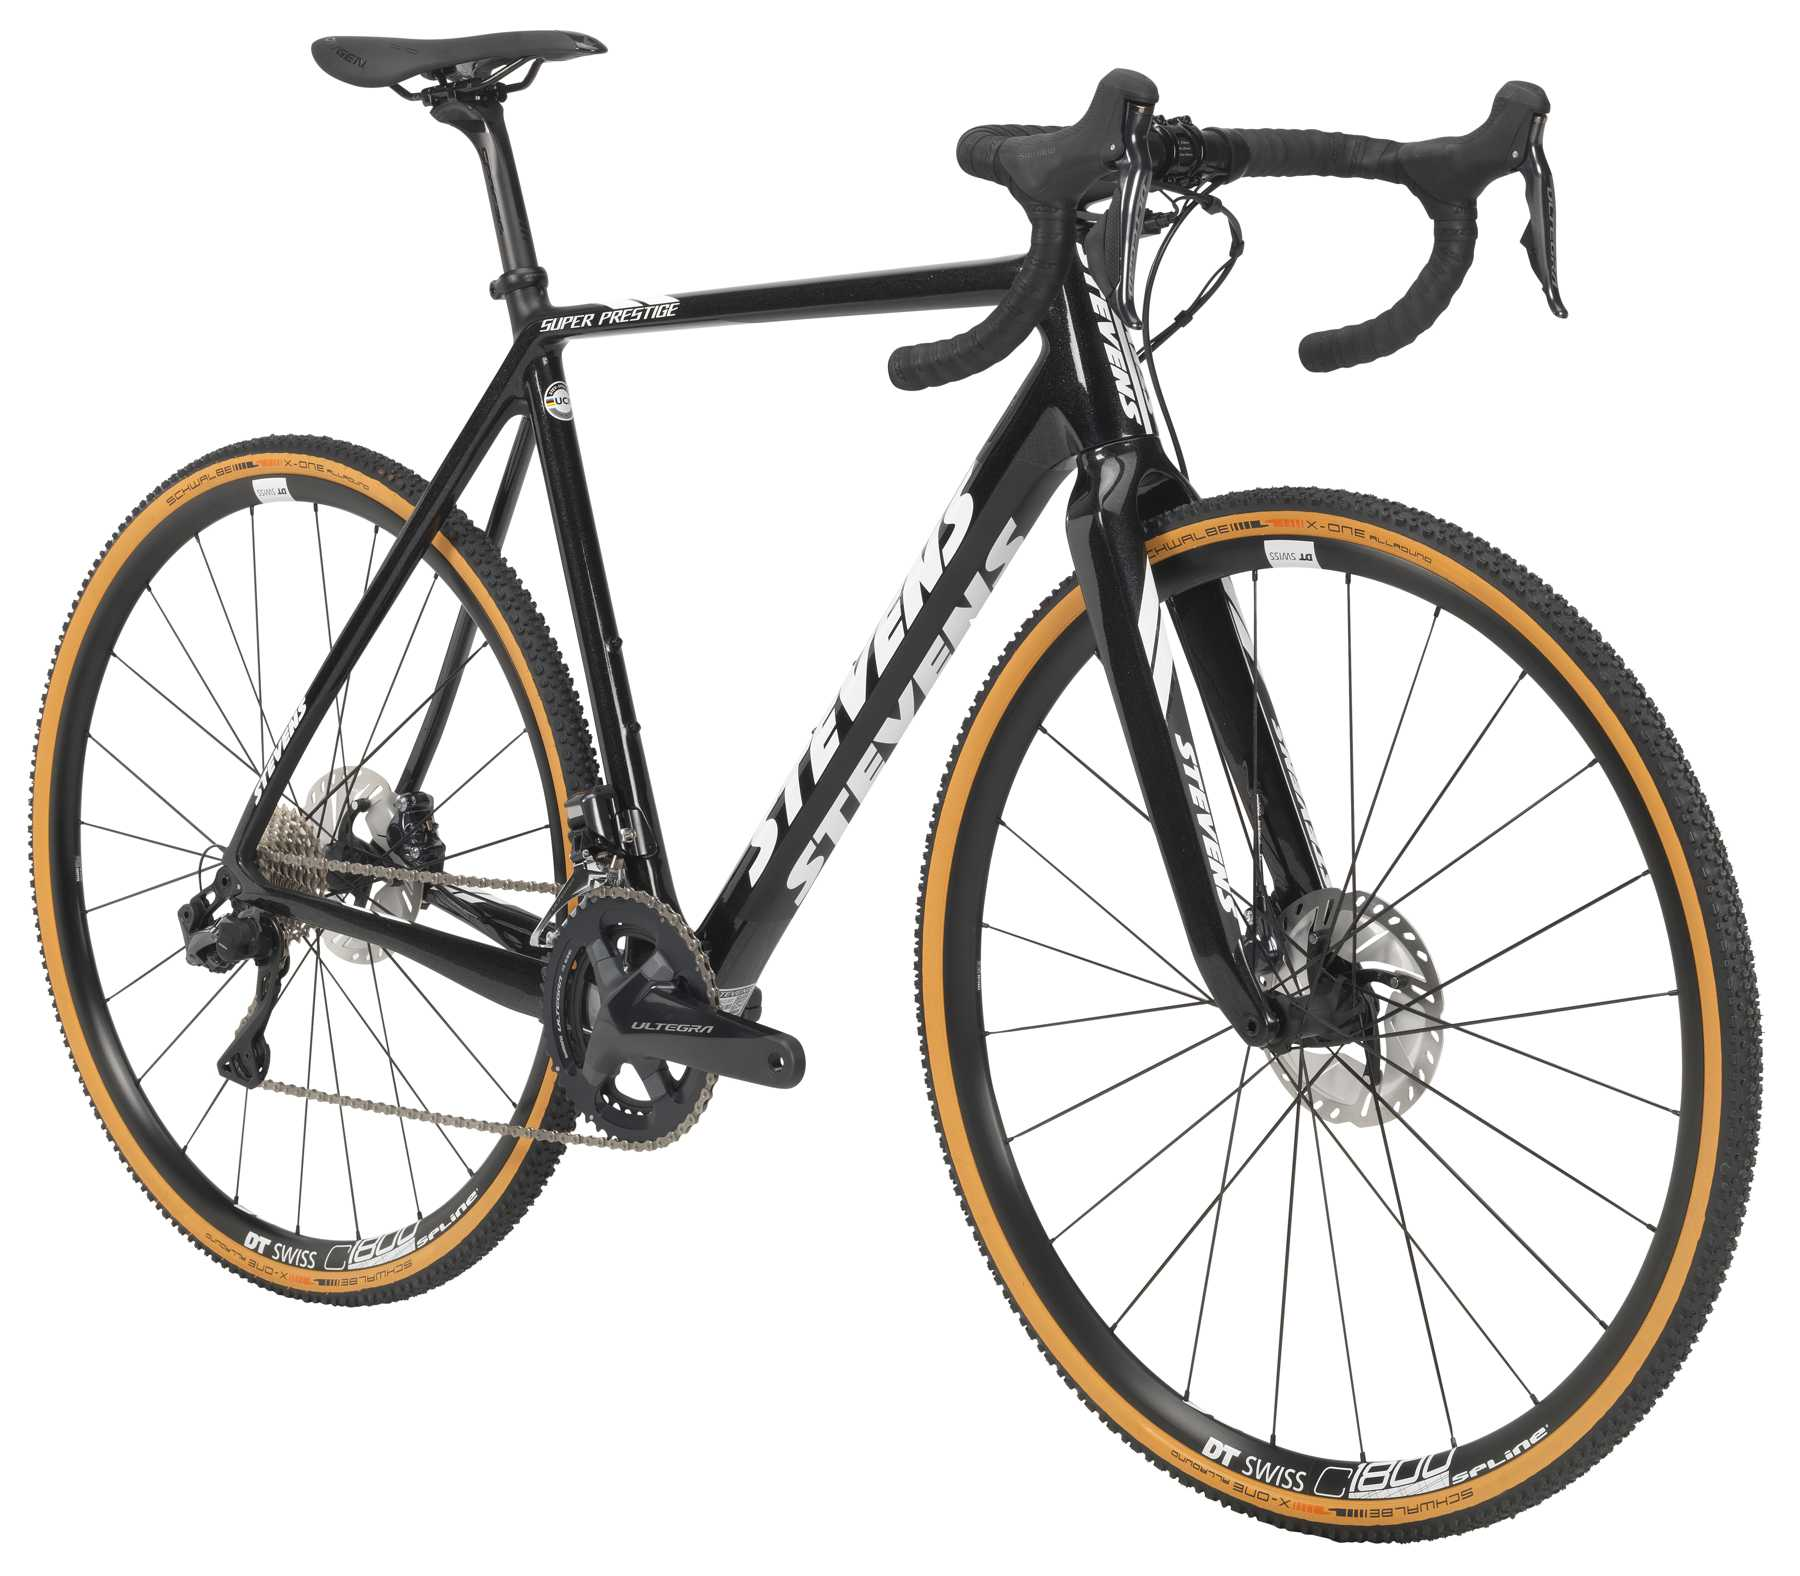 STEVENS Cross Super Prestige Di2 (2021)